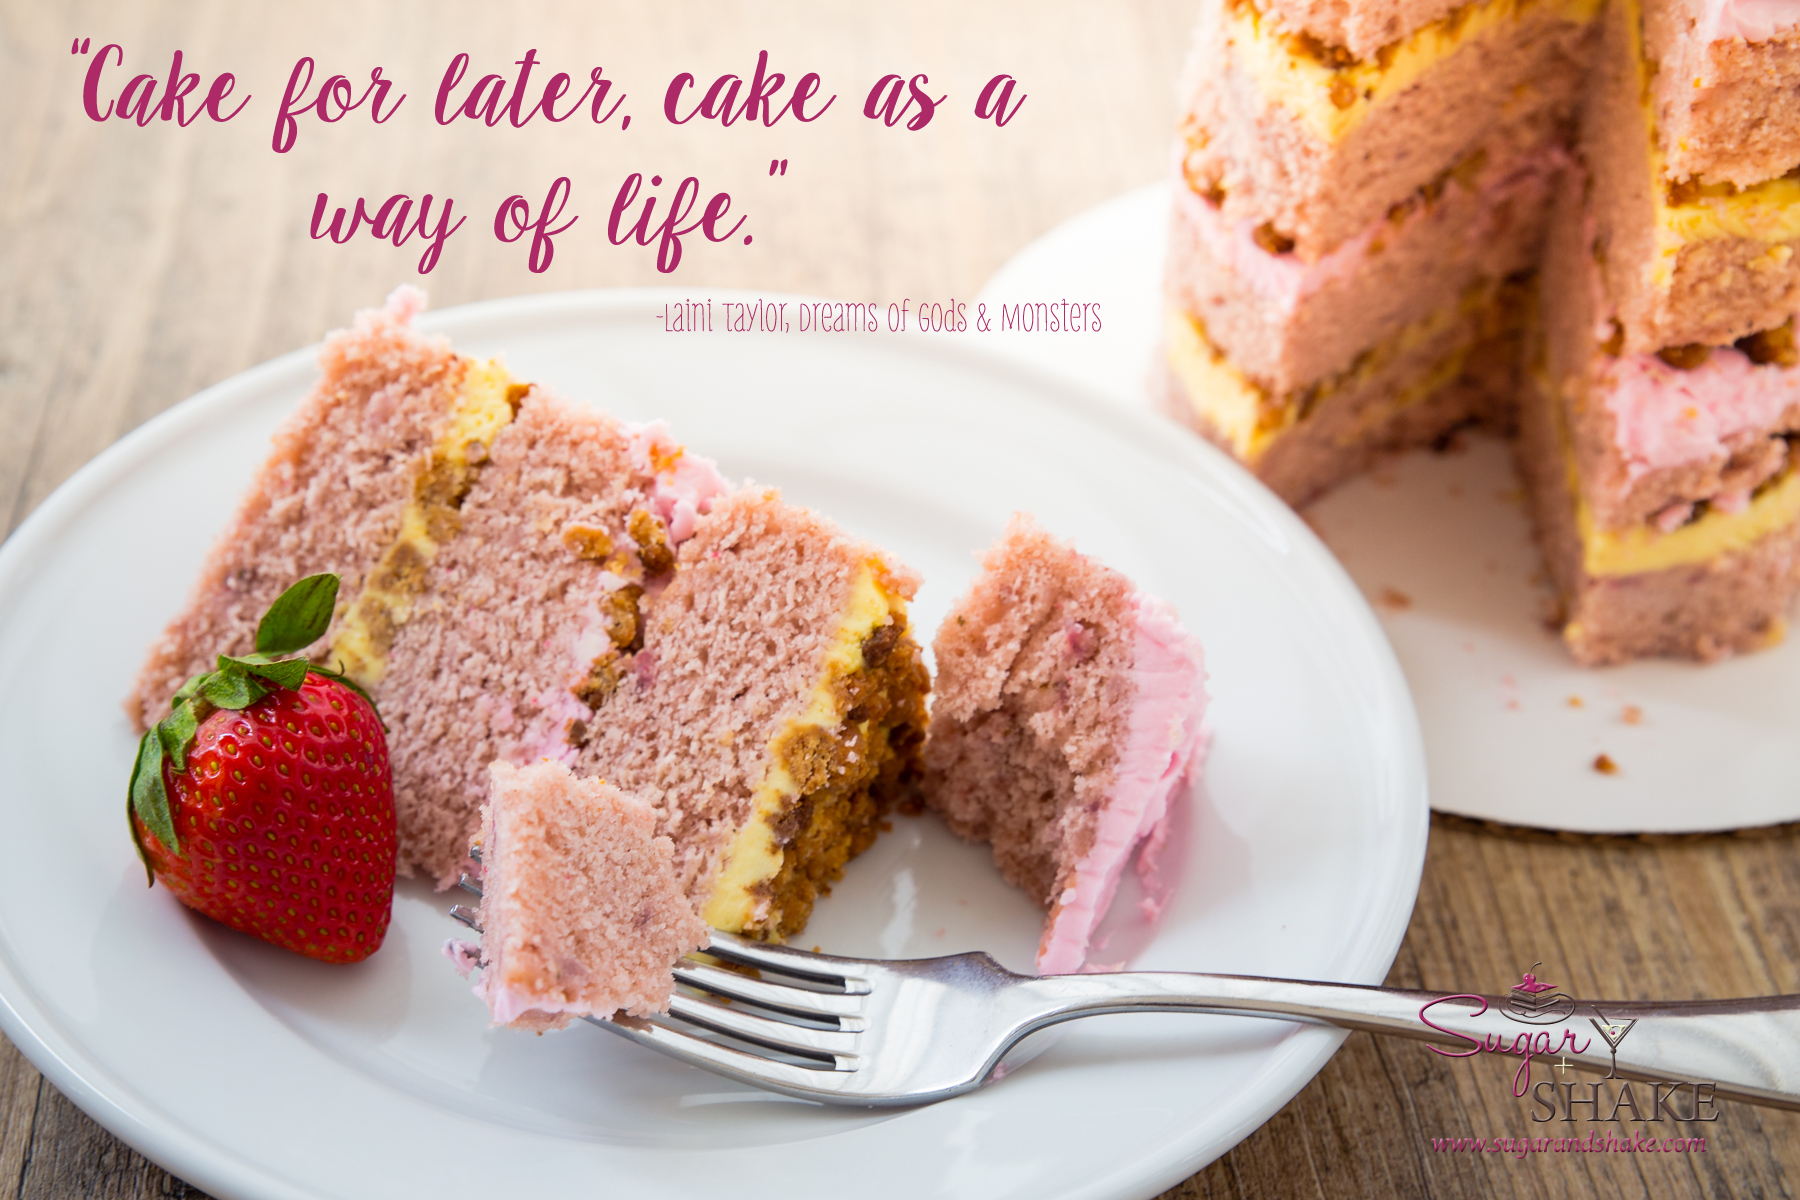 """Cake for later, cake as a way of life."" ― Laini Taylor, Dreams of Gods & Monsters 